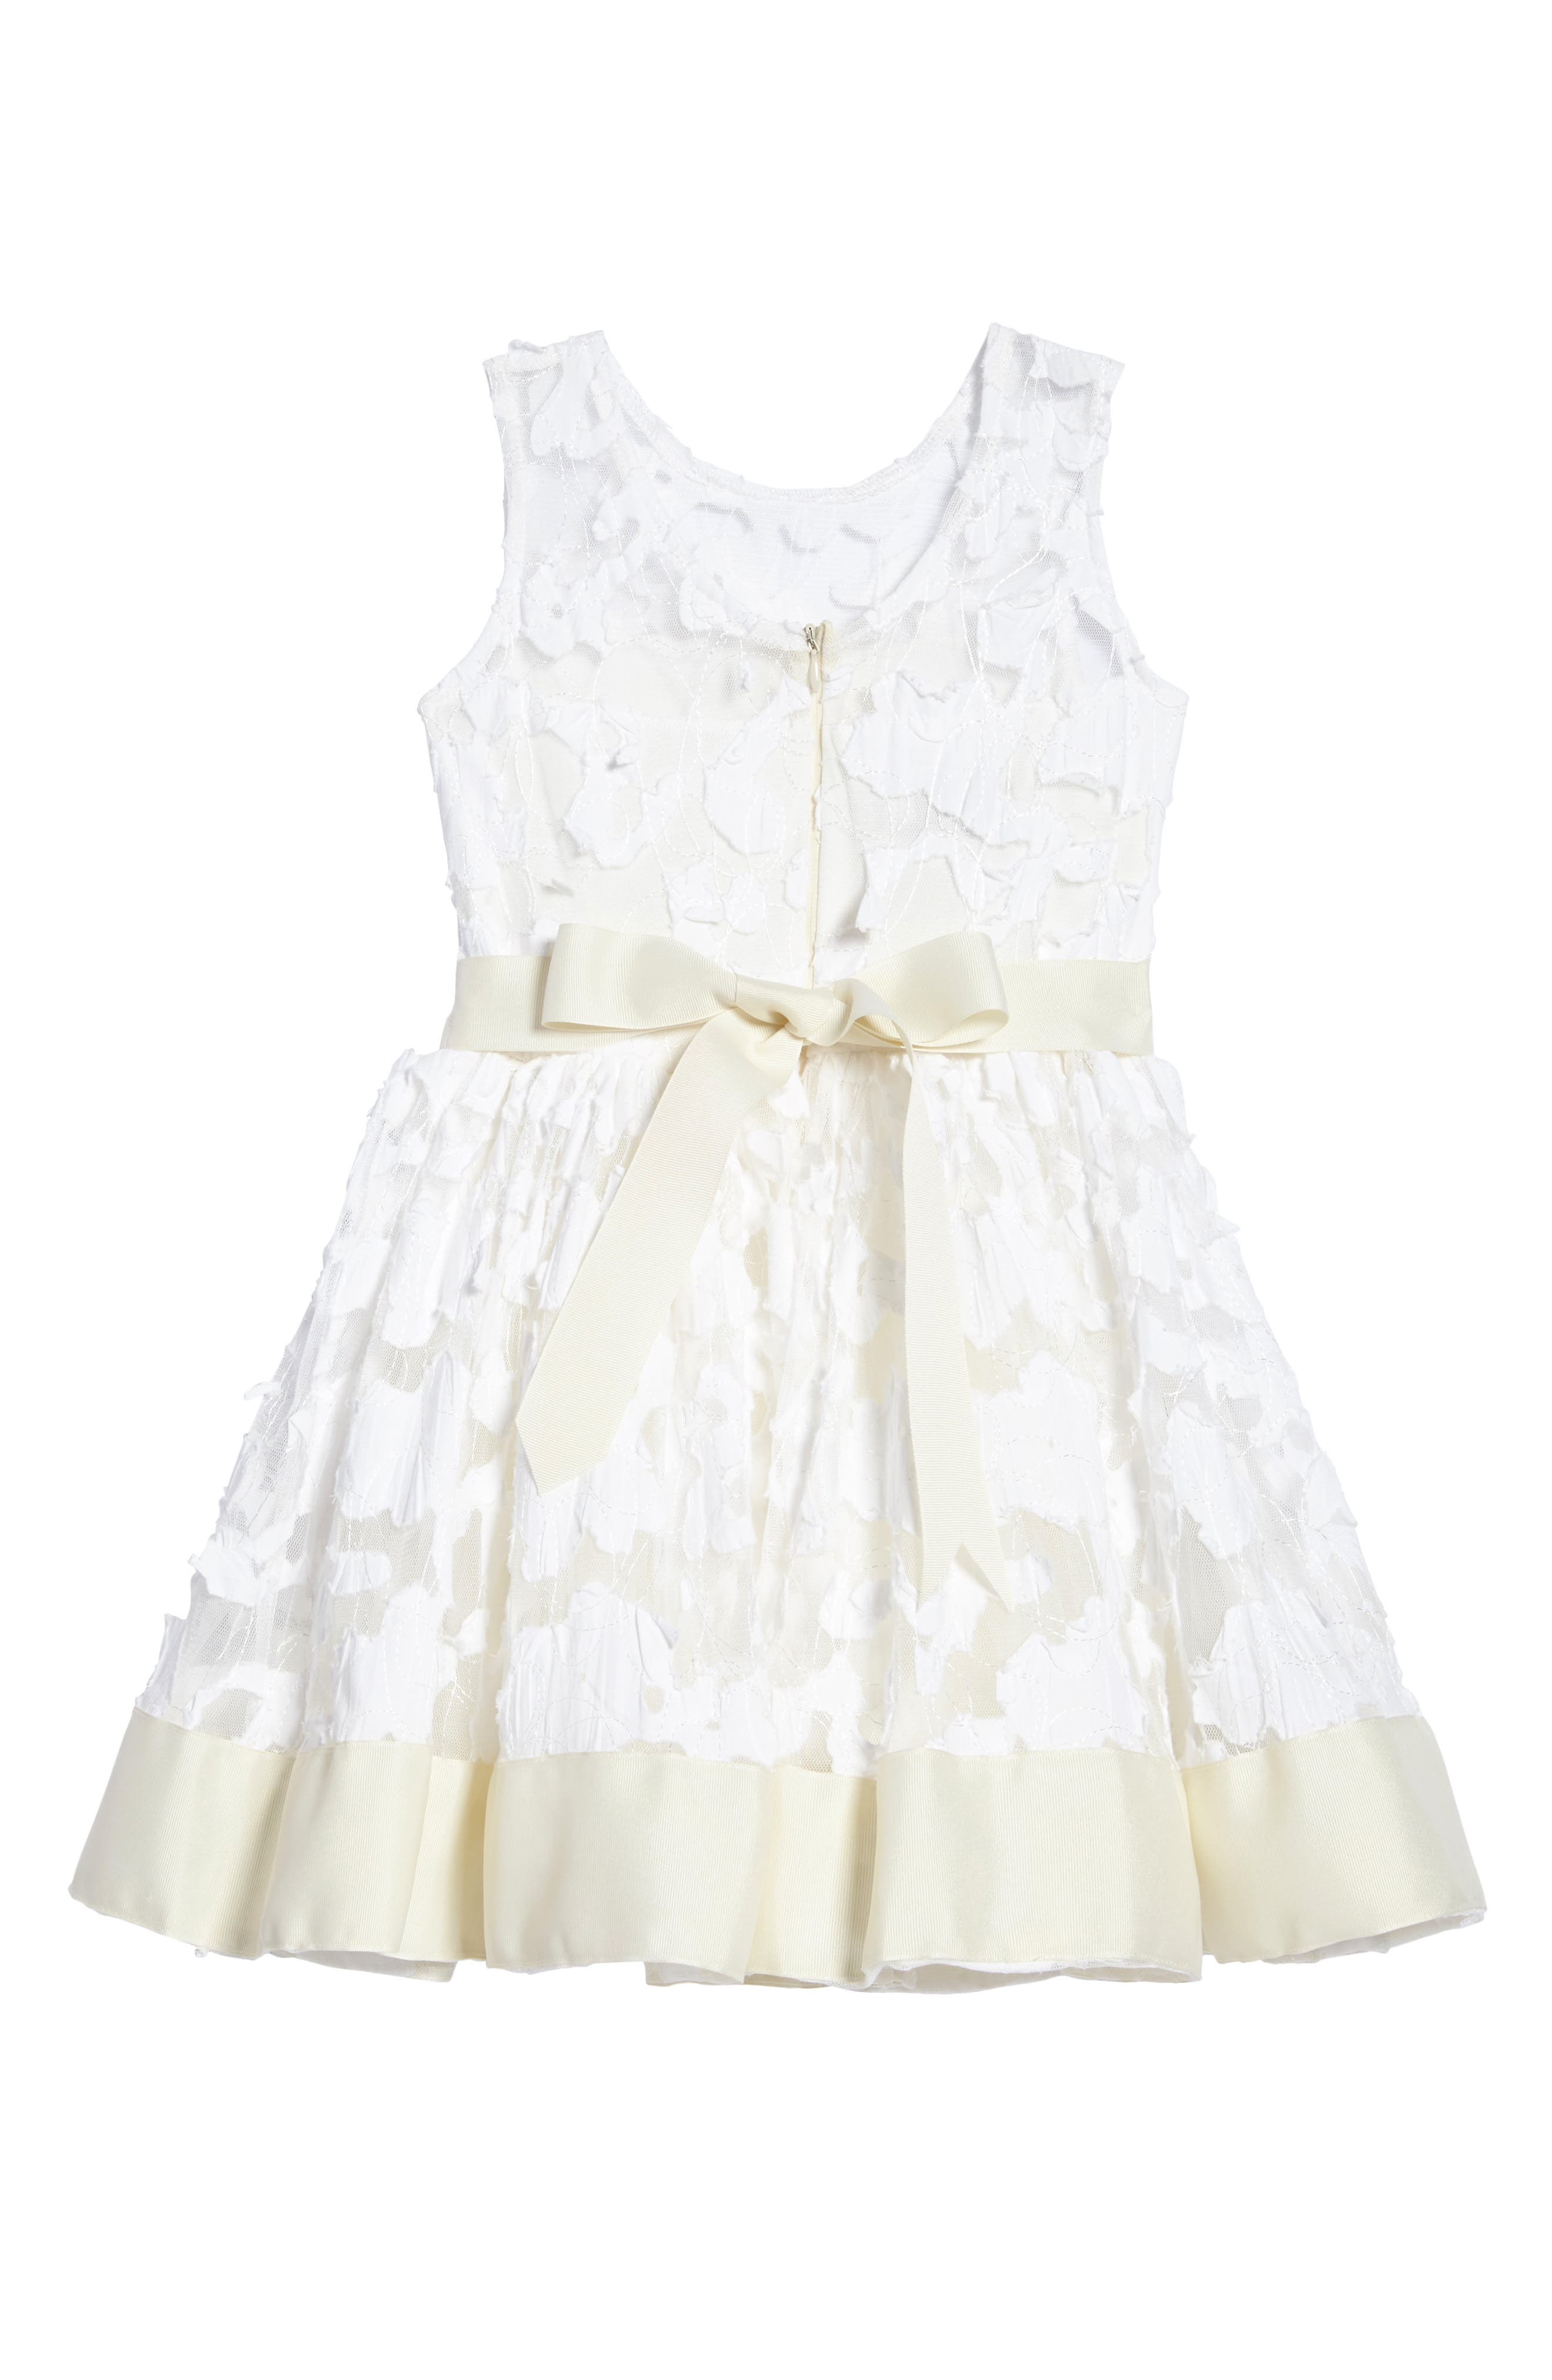 'Pretty in Ivory' Party Dress,                             Alternate thumbnail 3, color,